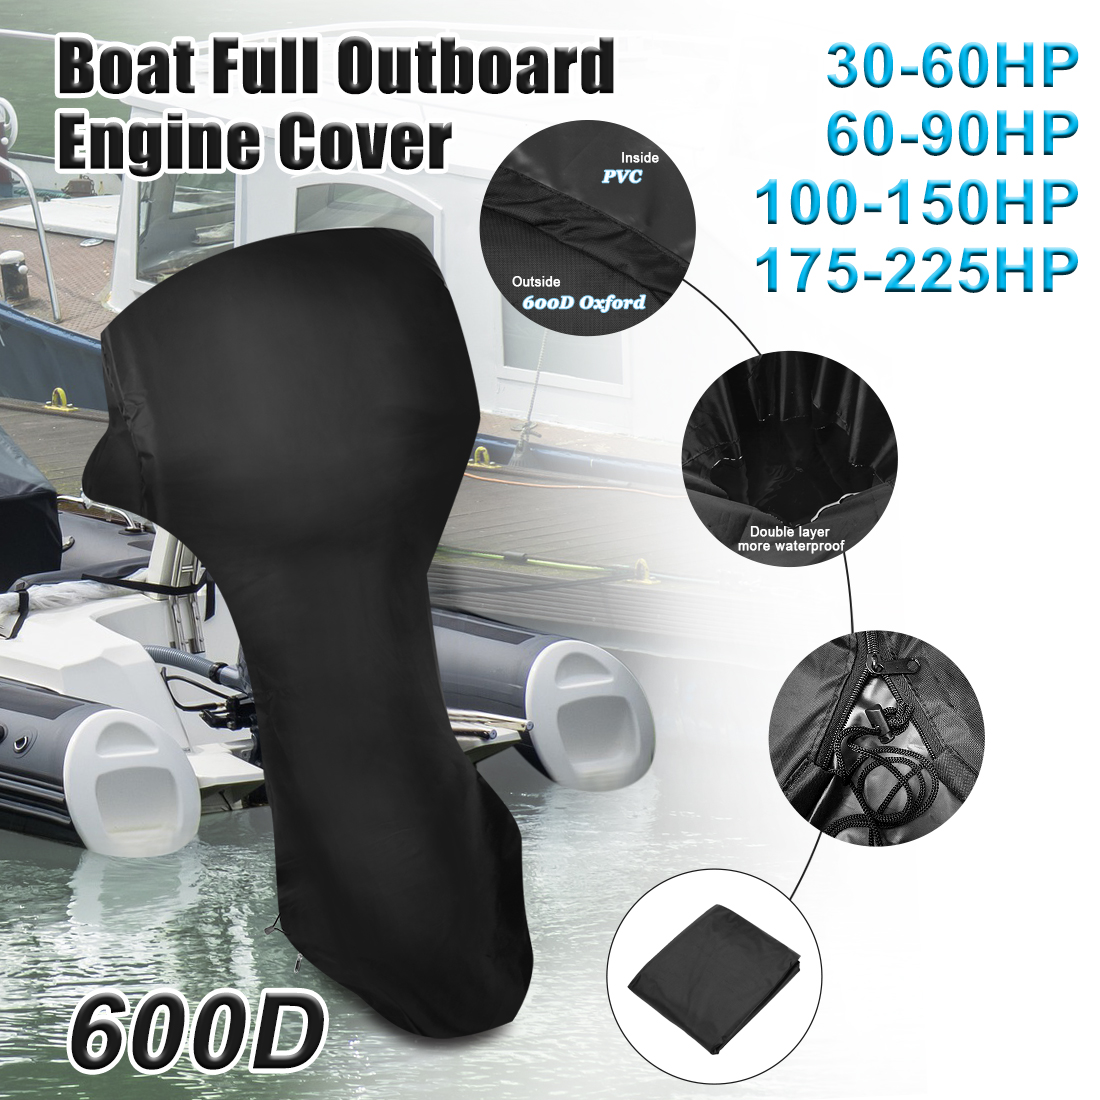 X Autohaux 600D Oxford Cloth PVC Full Boat Motor Cover Outboard Waterproof  Dust Rain UV Resistant Engine Protector 30-225HP